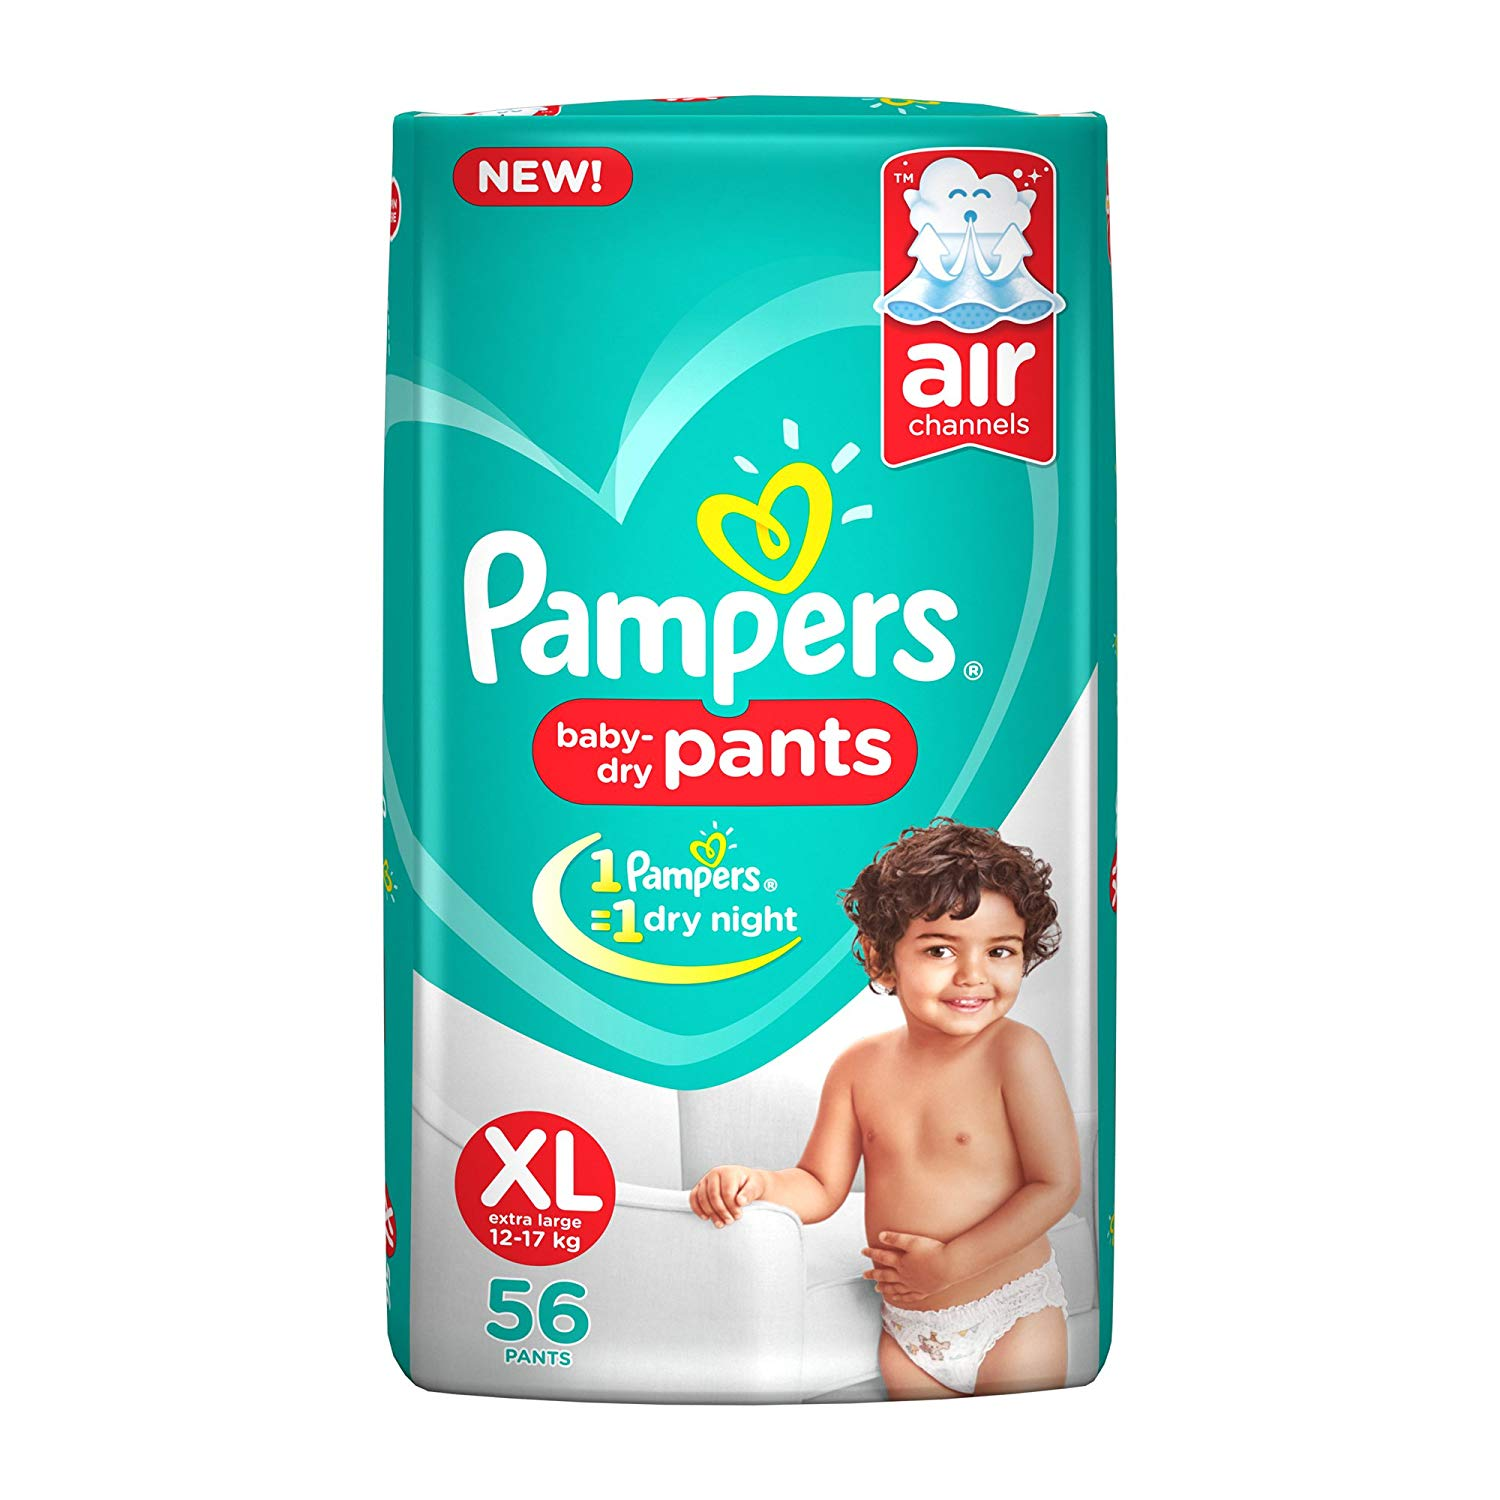 Pampers Pants Extra Large Size Diapers(56 Count)